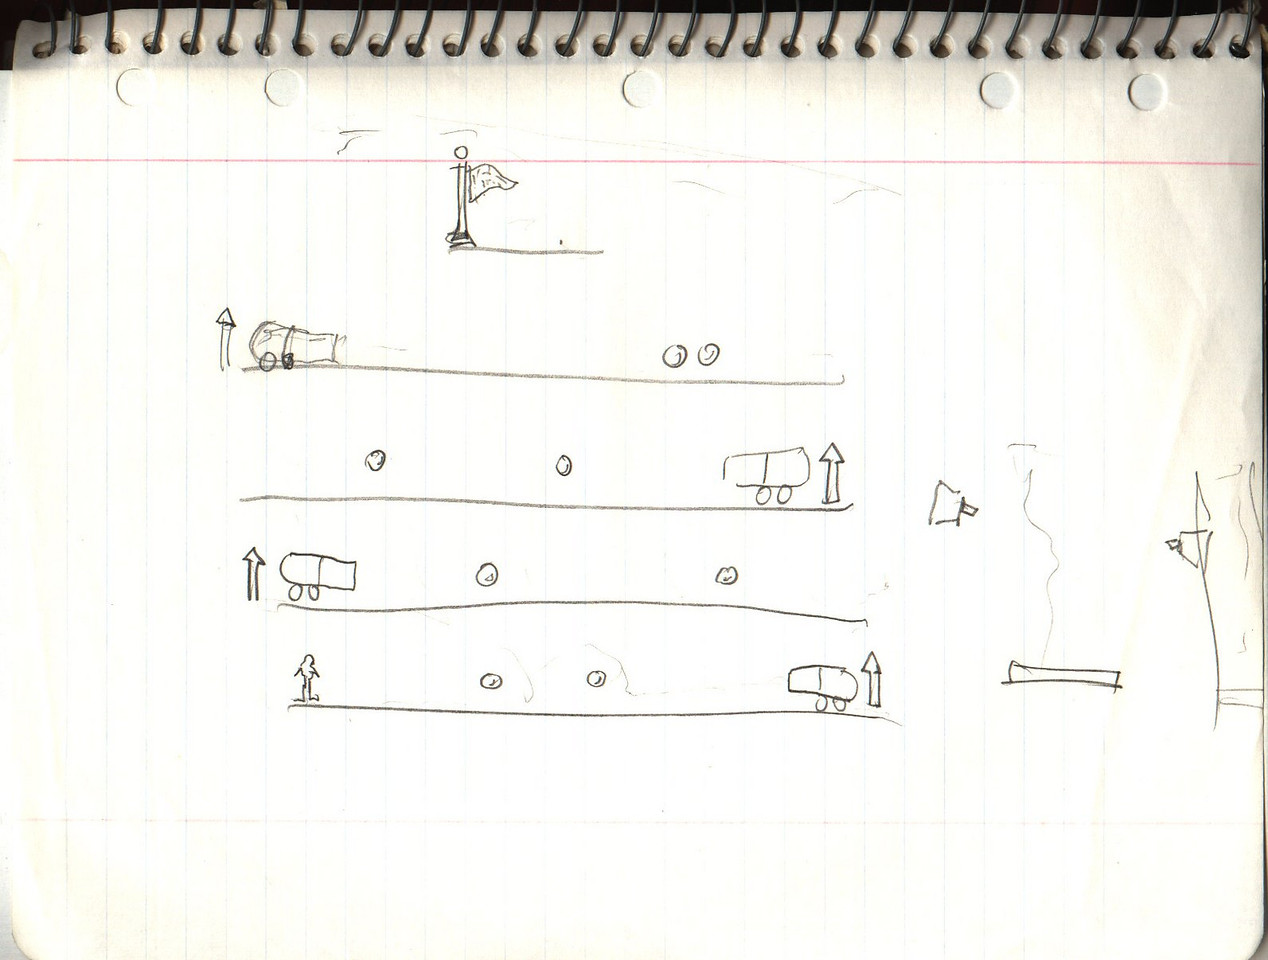 This was my initial sketch for what I thought the game could be, with the first level on the left and the 2nd level on the right.